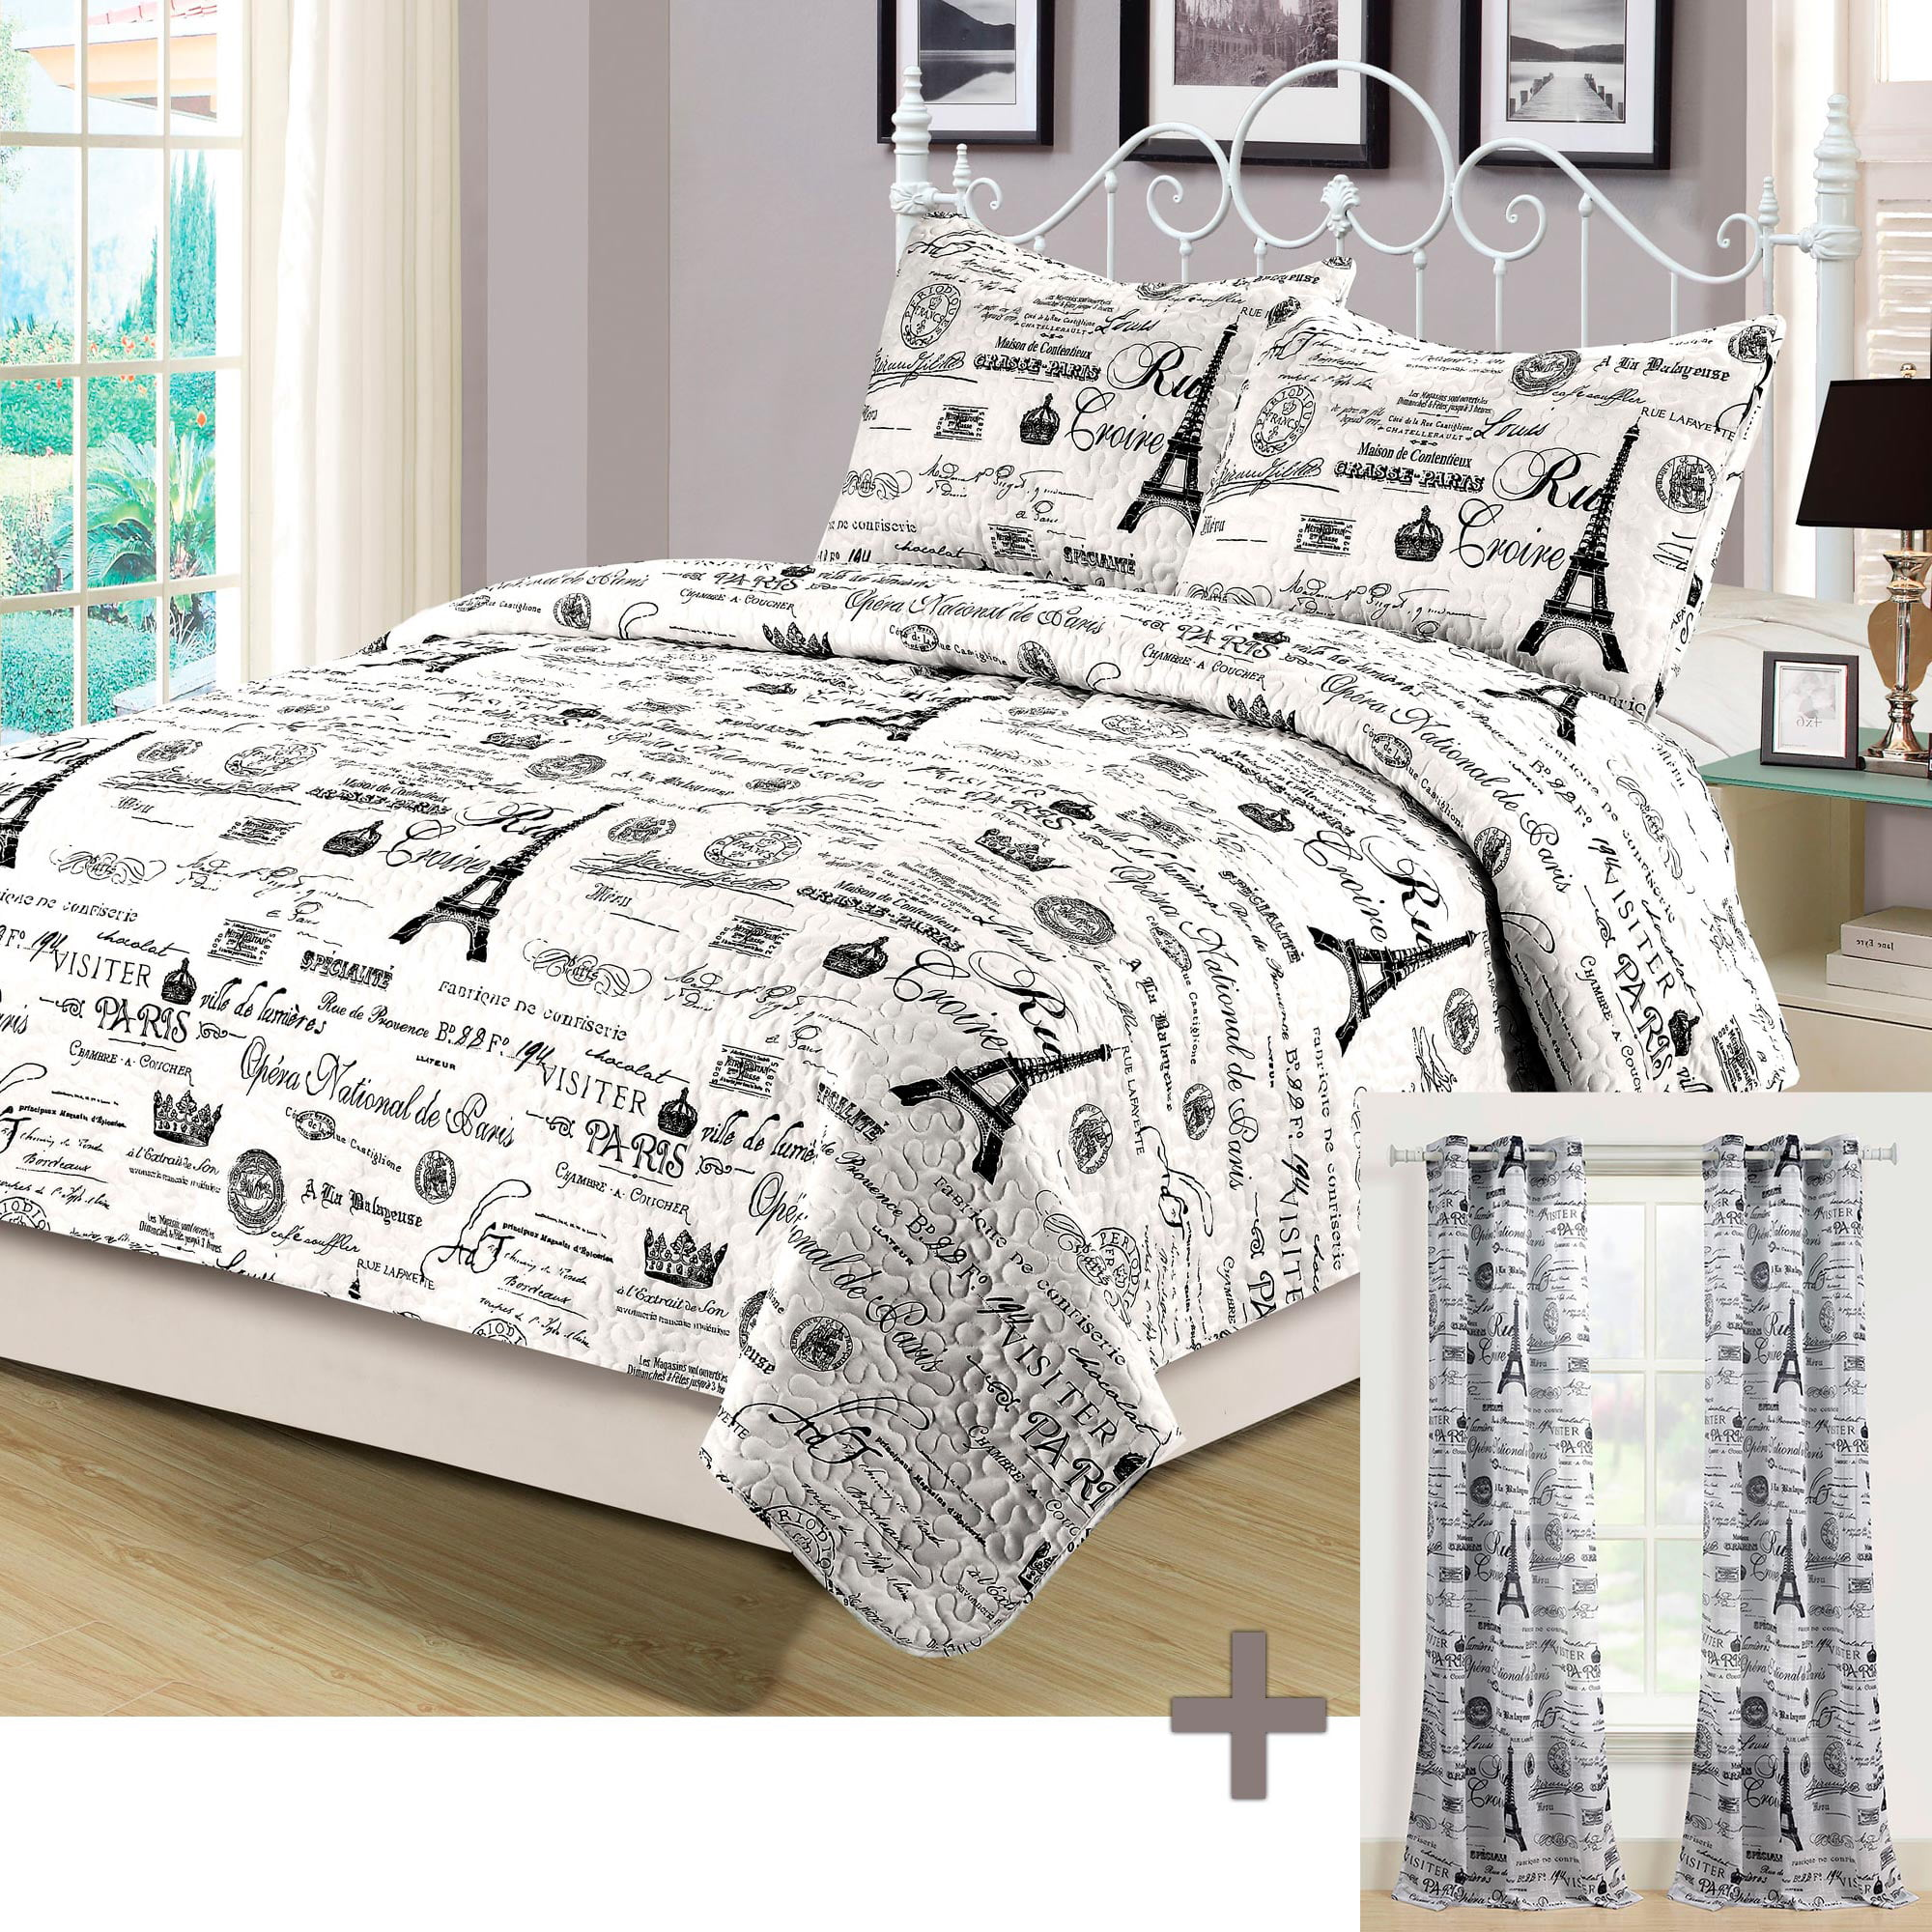 King Quilt Set with Matching Curtains 5 Piece Paris Eiffel Tower